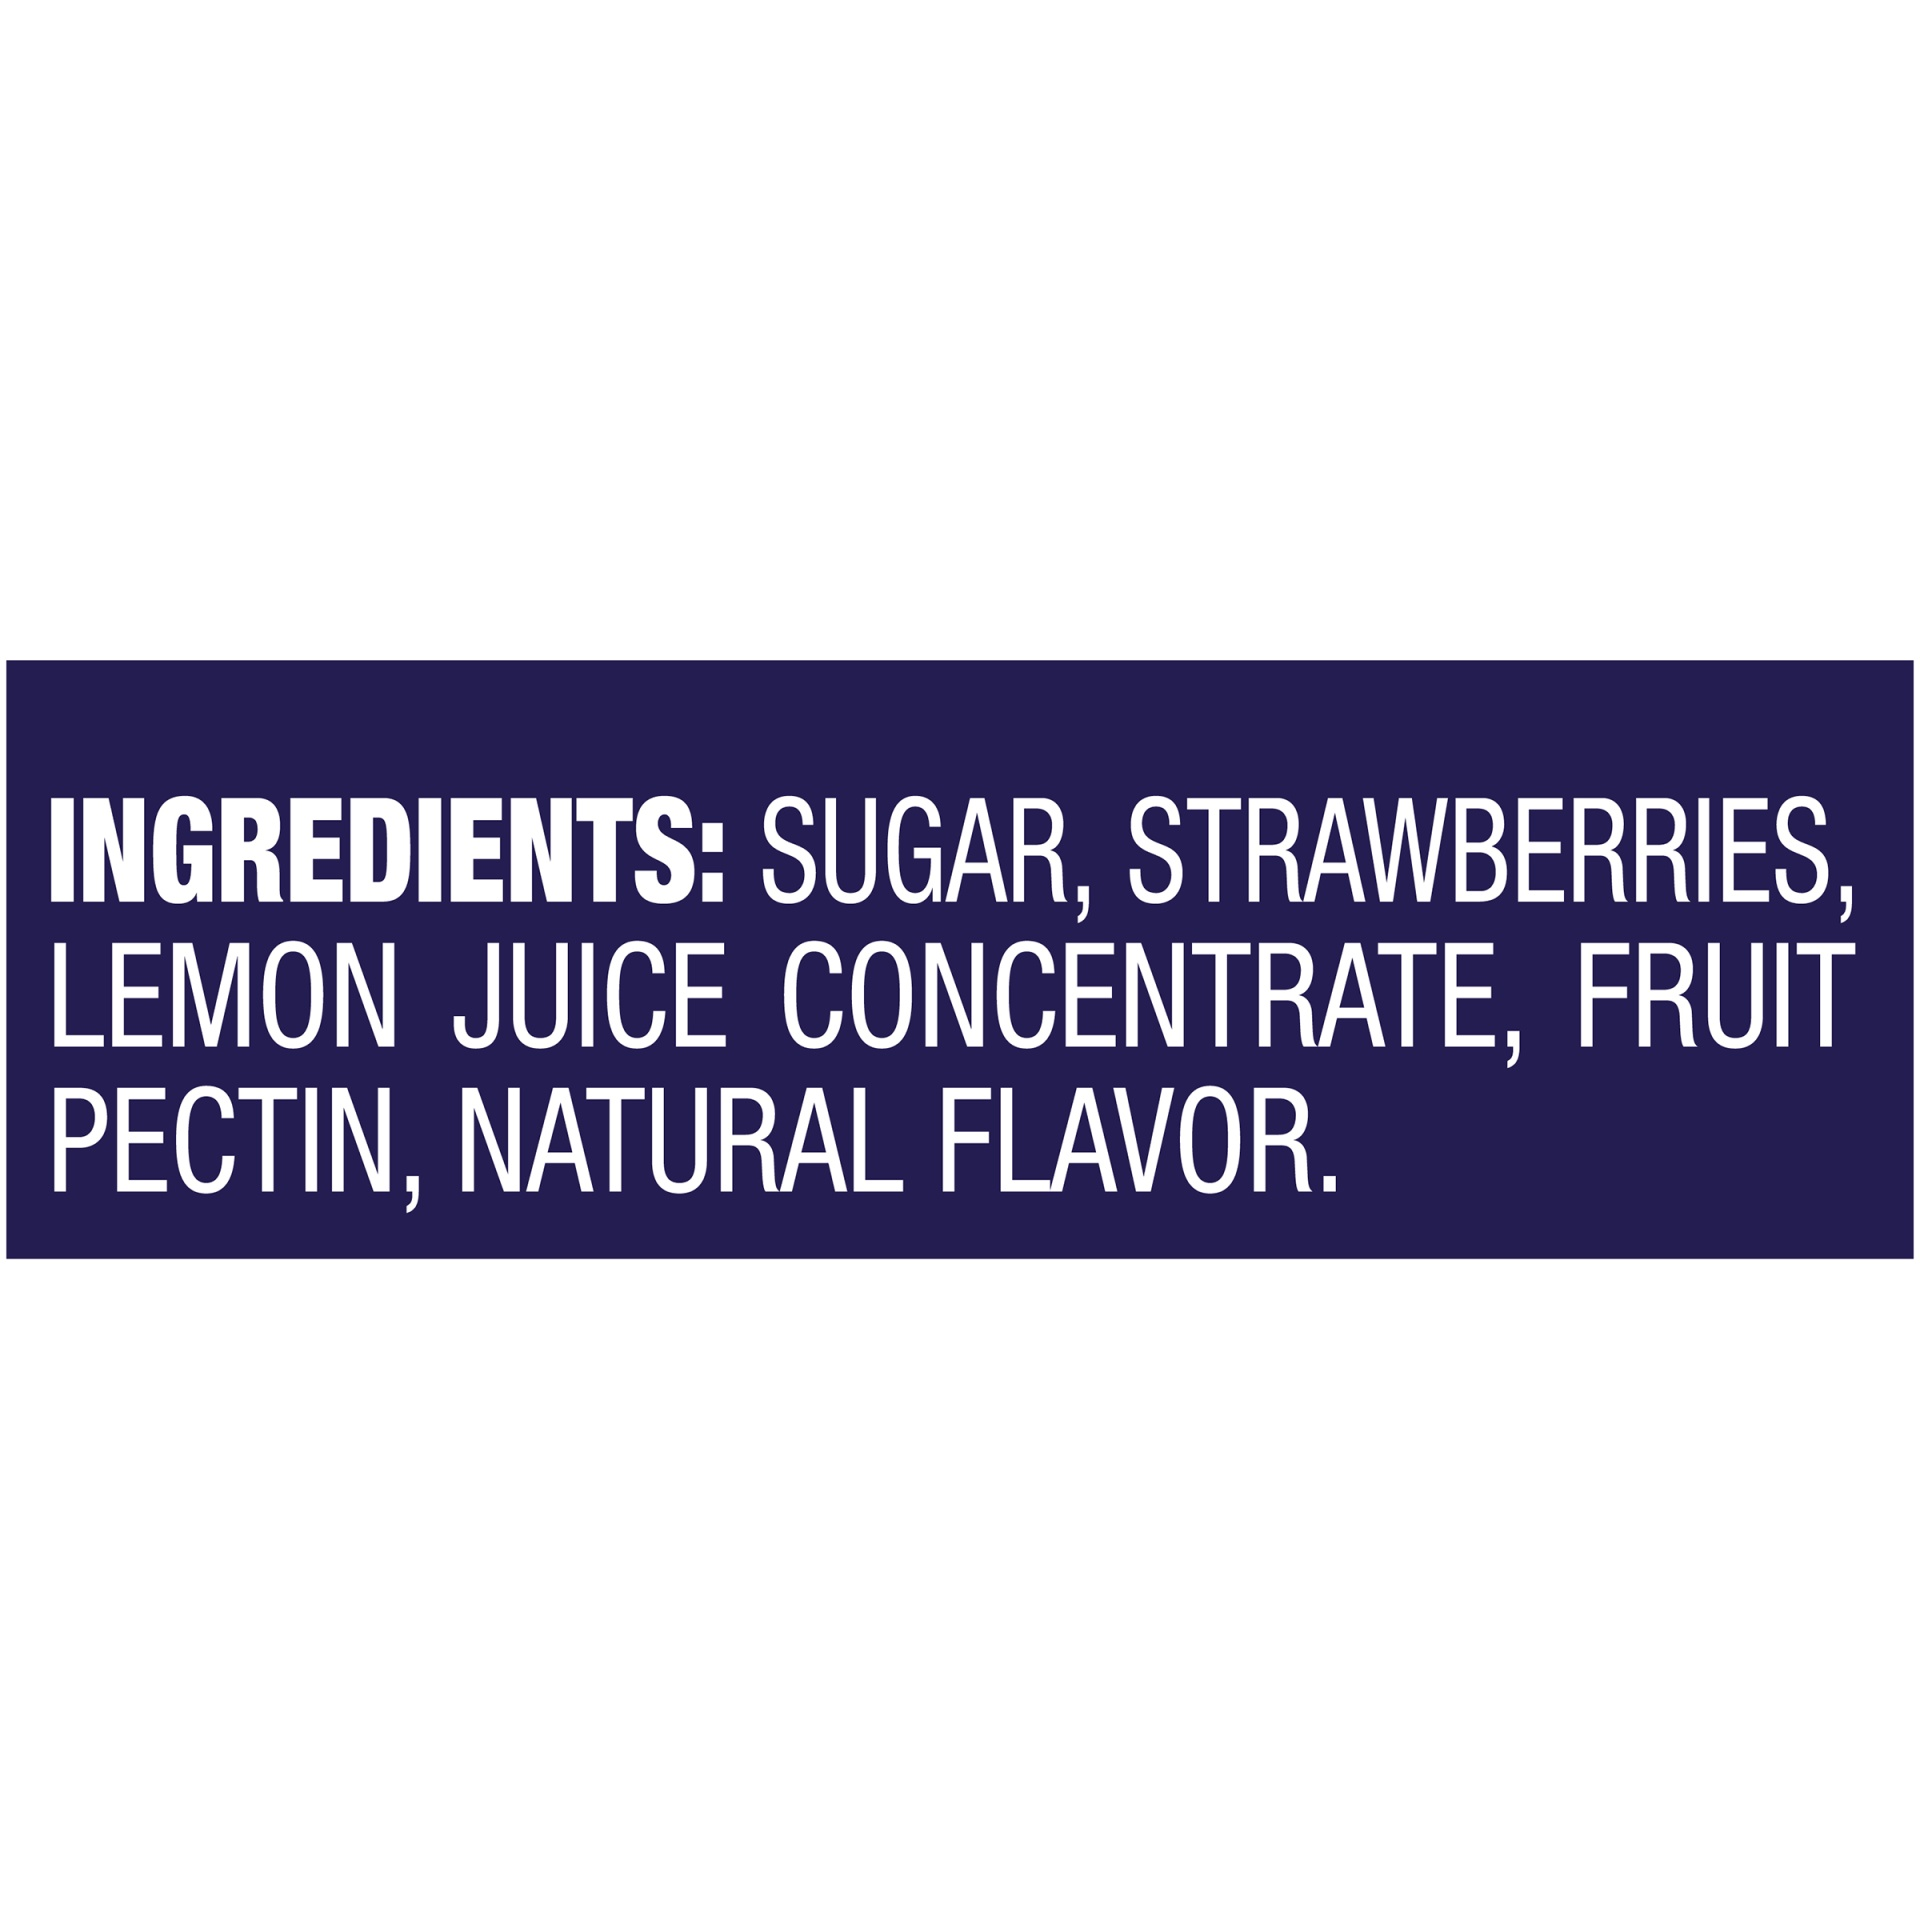 slide 5 of 5, Welch's Natural Strawberry Spread,